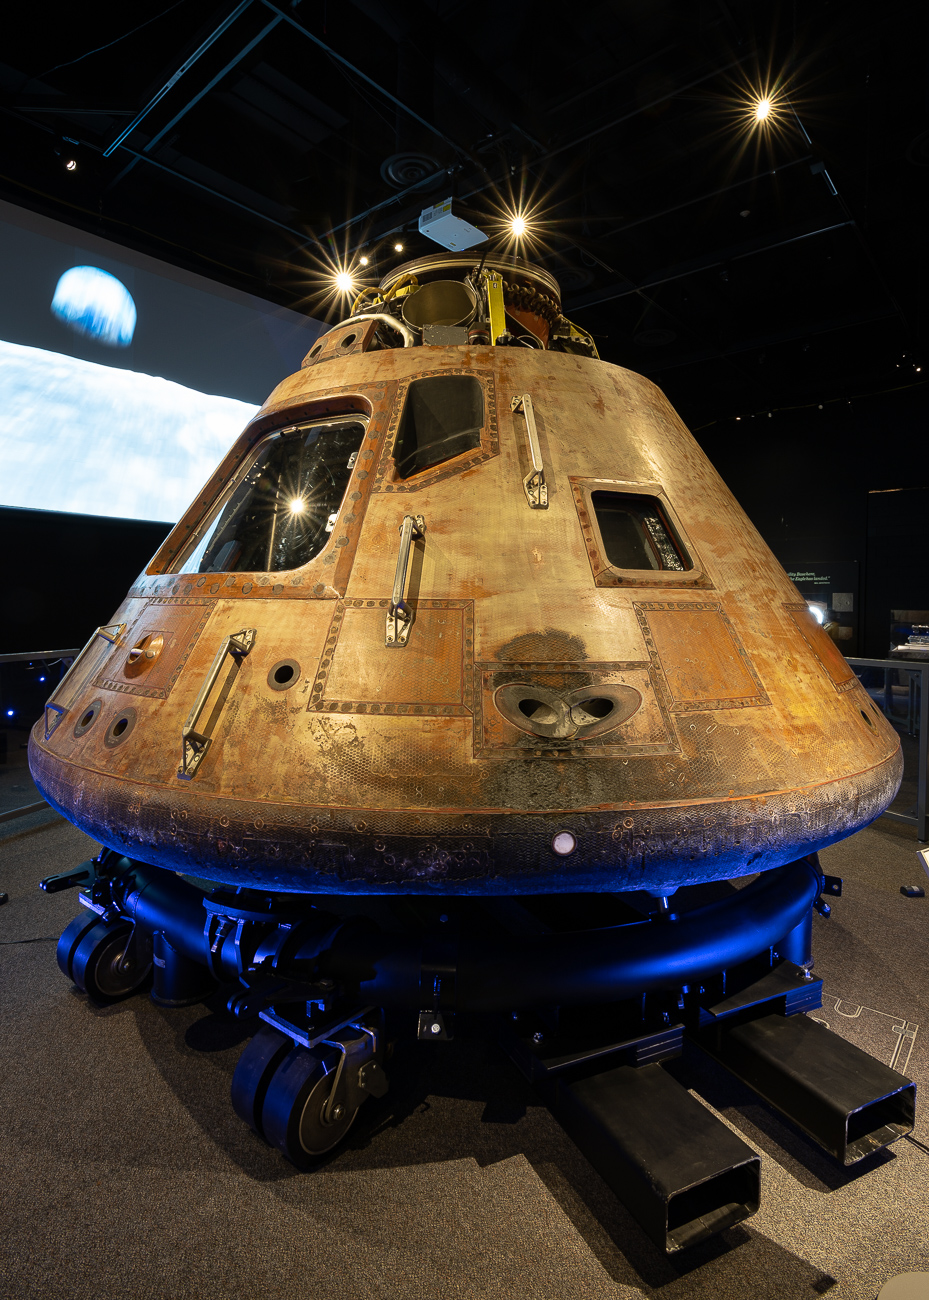 The Apollo 11 command module Columbia is the most notable piece of the collection. This piece of equipment safely housed all three astronauts during takeoff, travel, and reentry, and was recovered from the Pacific Ocean along with Armstrong, Aldrin, and Collins when they returned to Earth. It hasn't left DC since 1976, but is now part of the traveling Destination Moon exhibition. You can see this extraordinary piece of history at the Cincinnati Museum Center until February 17, 2020. / Image: Phil Armstrong, Cincinnati Refined // Published: 10.2.19<p></p>